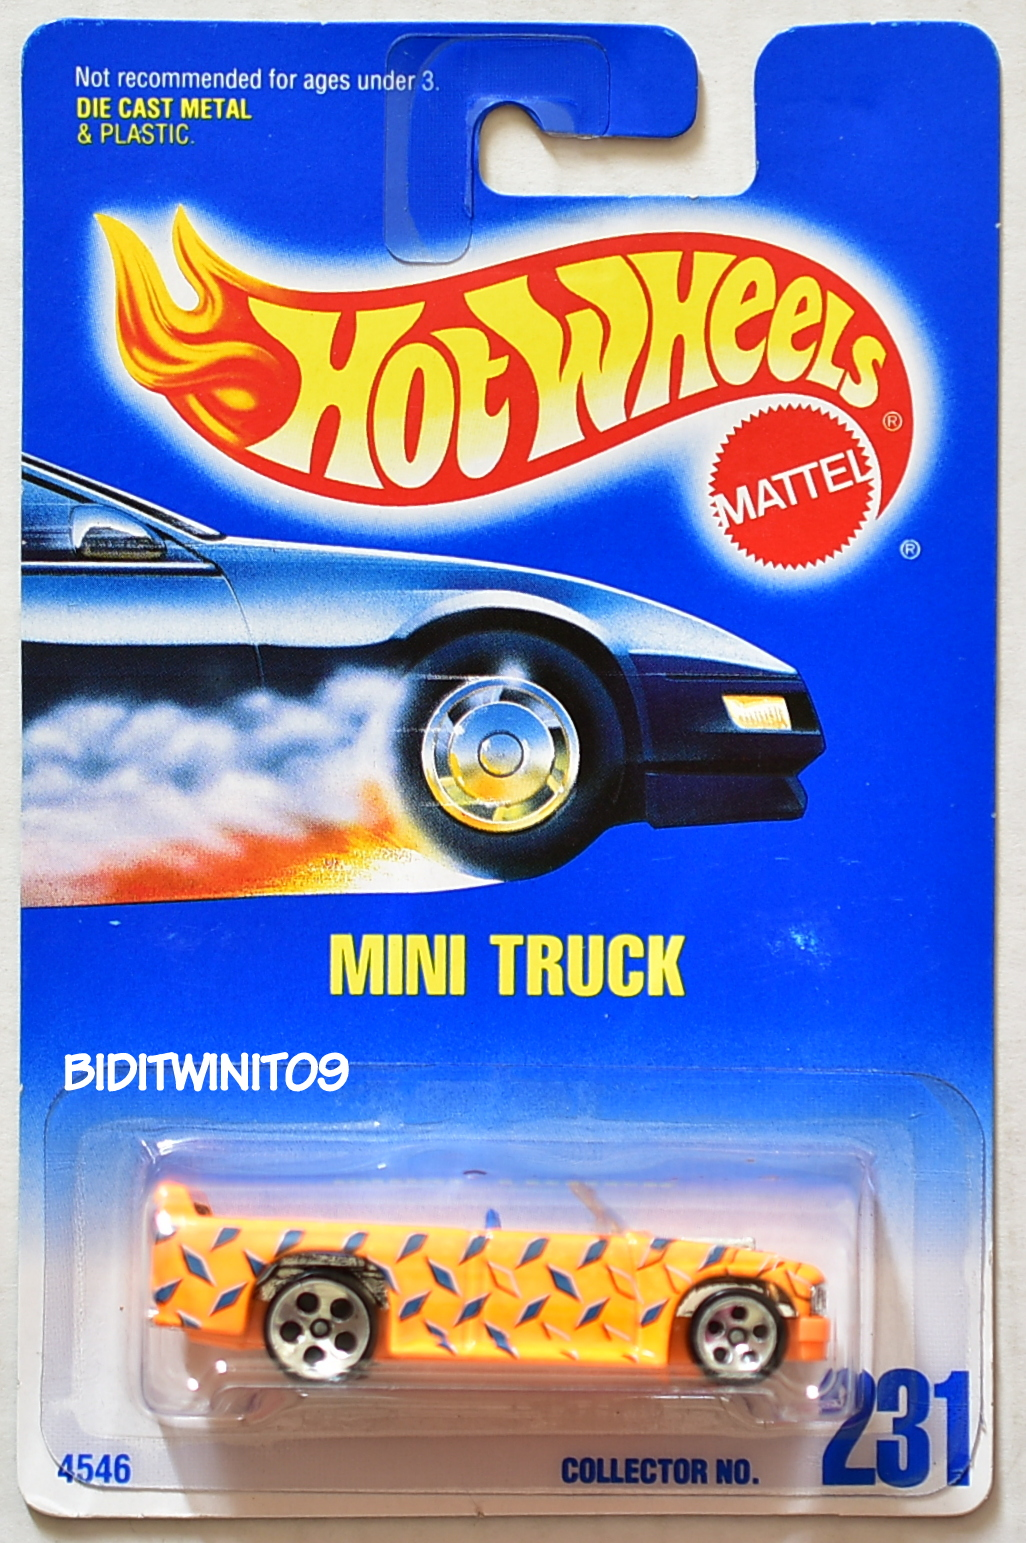 HOT WHEELS 1991 BLUE CARD #231 MINI TRUCK YELLOW W/ 5 HOLE WHEELS 13 E+